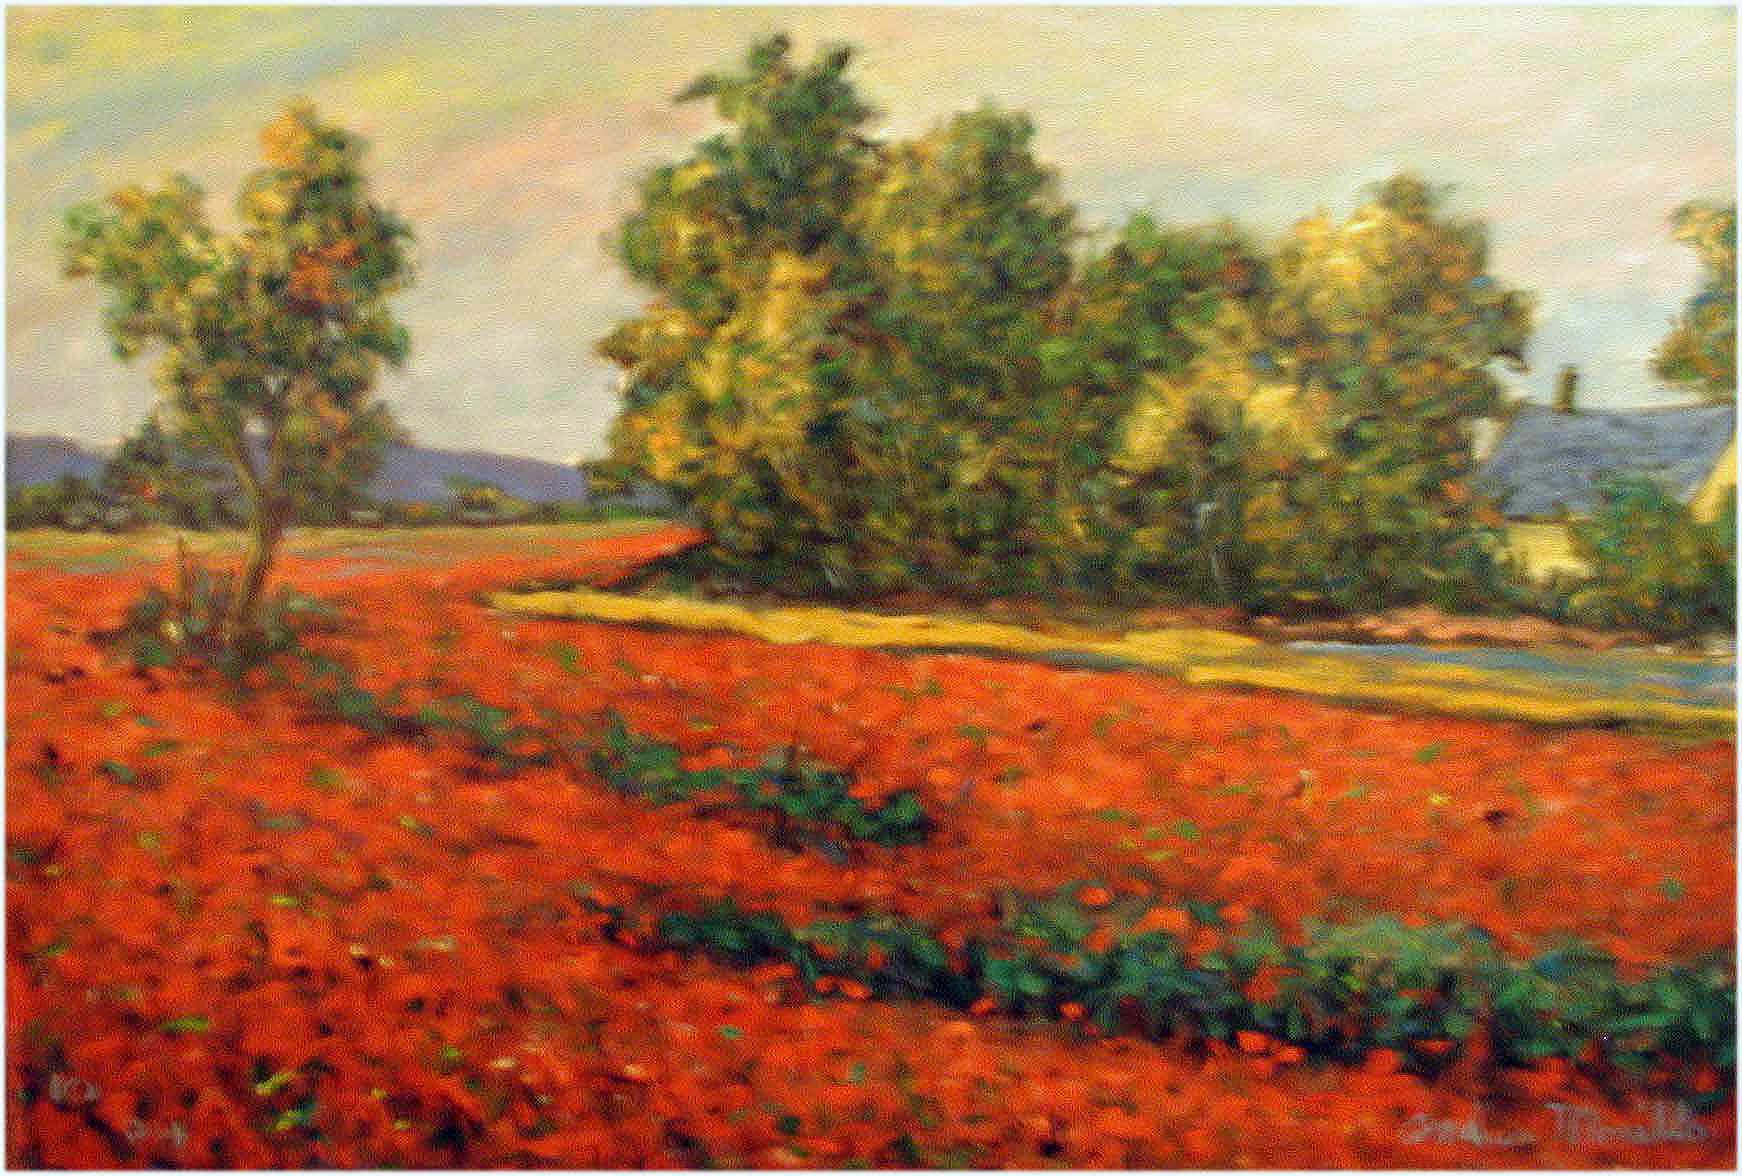 Poppyfield by  Andres  Morillo - Masterpiece Online